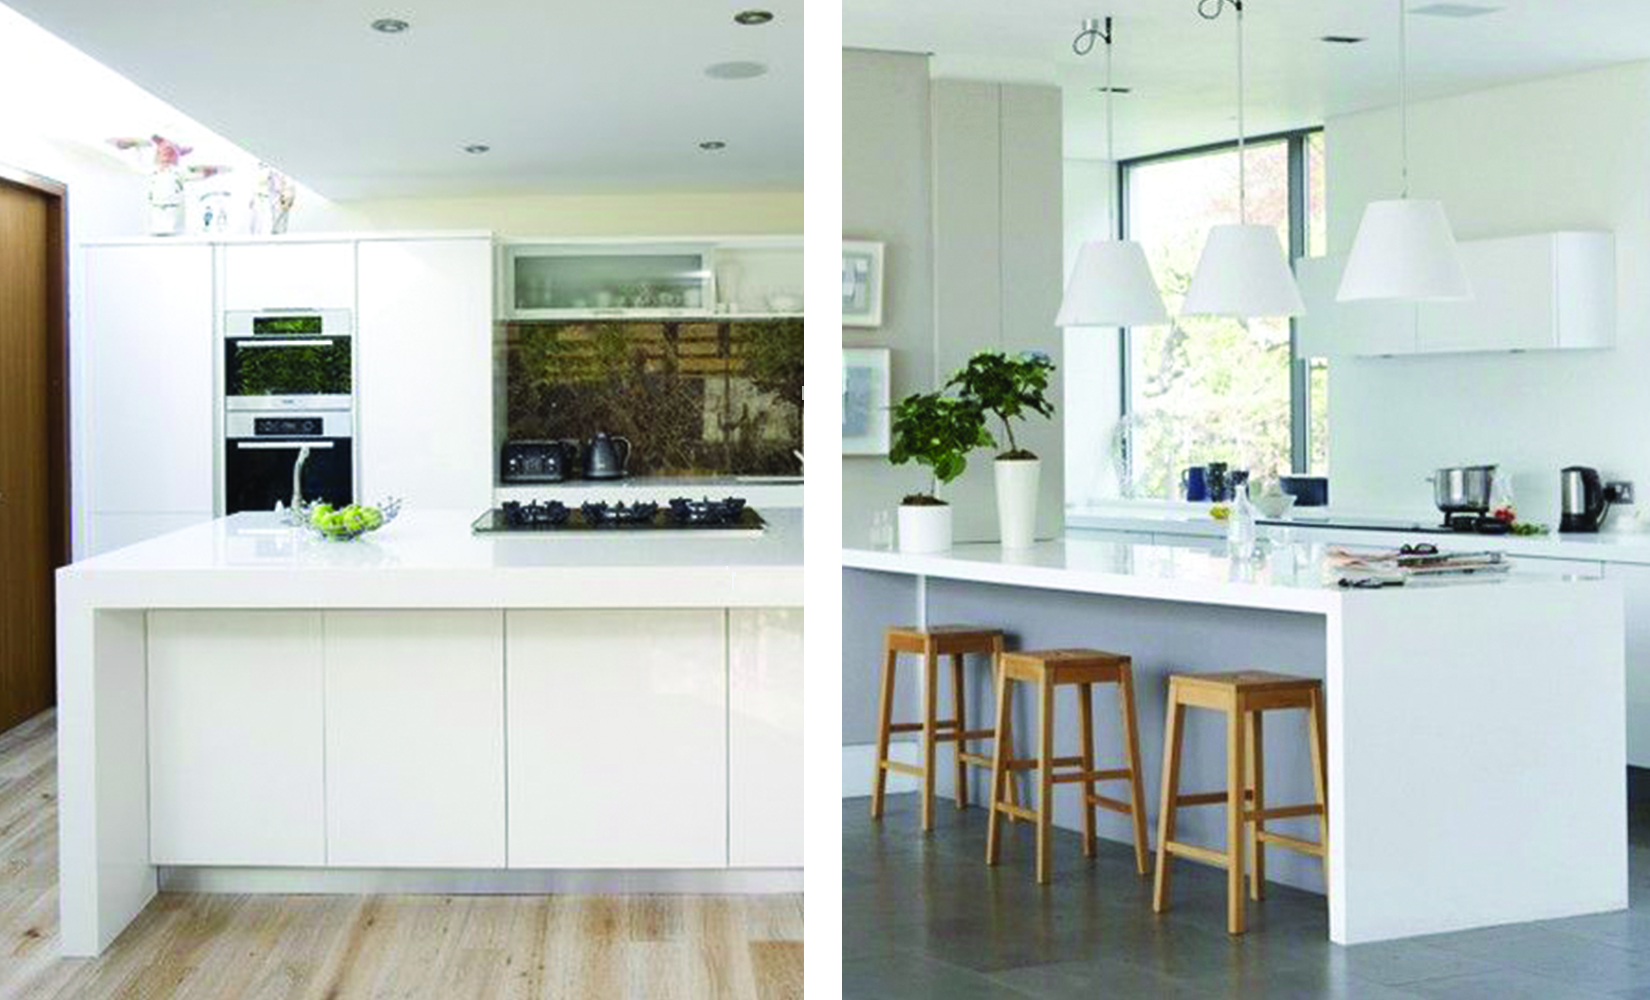 Kitchen design considerations for designing an island bench ibuildnew blog ibuildnew blog - Kitchen bench designs ...